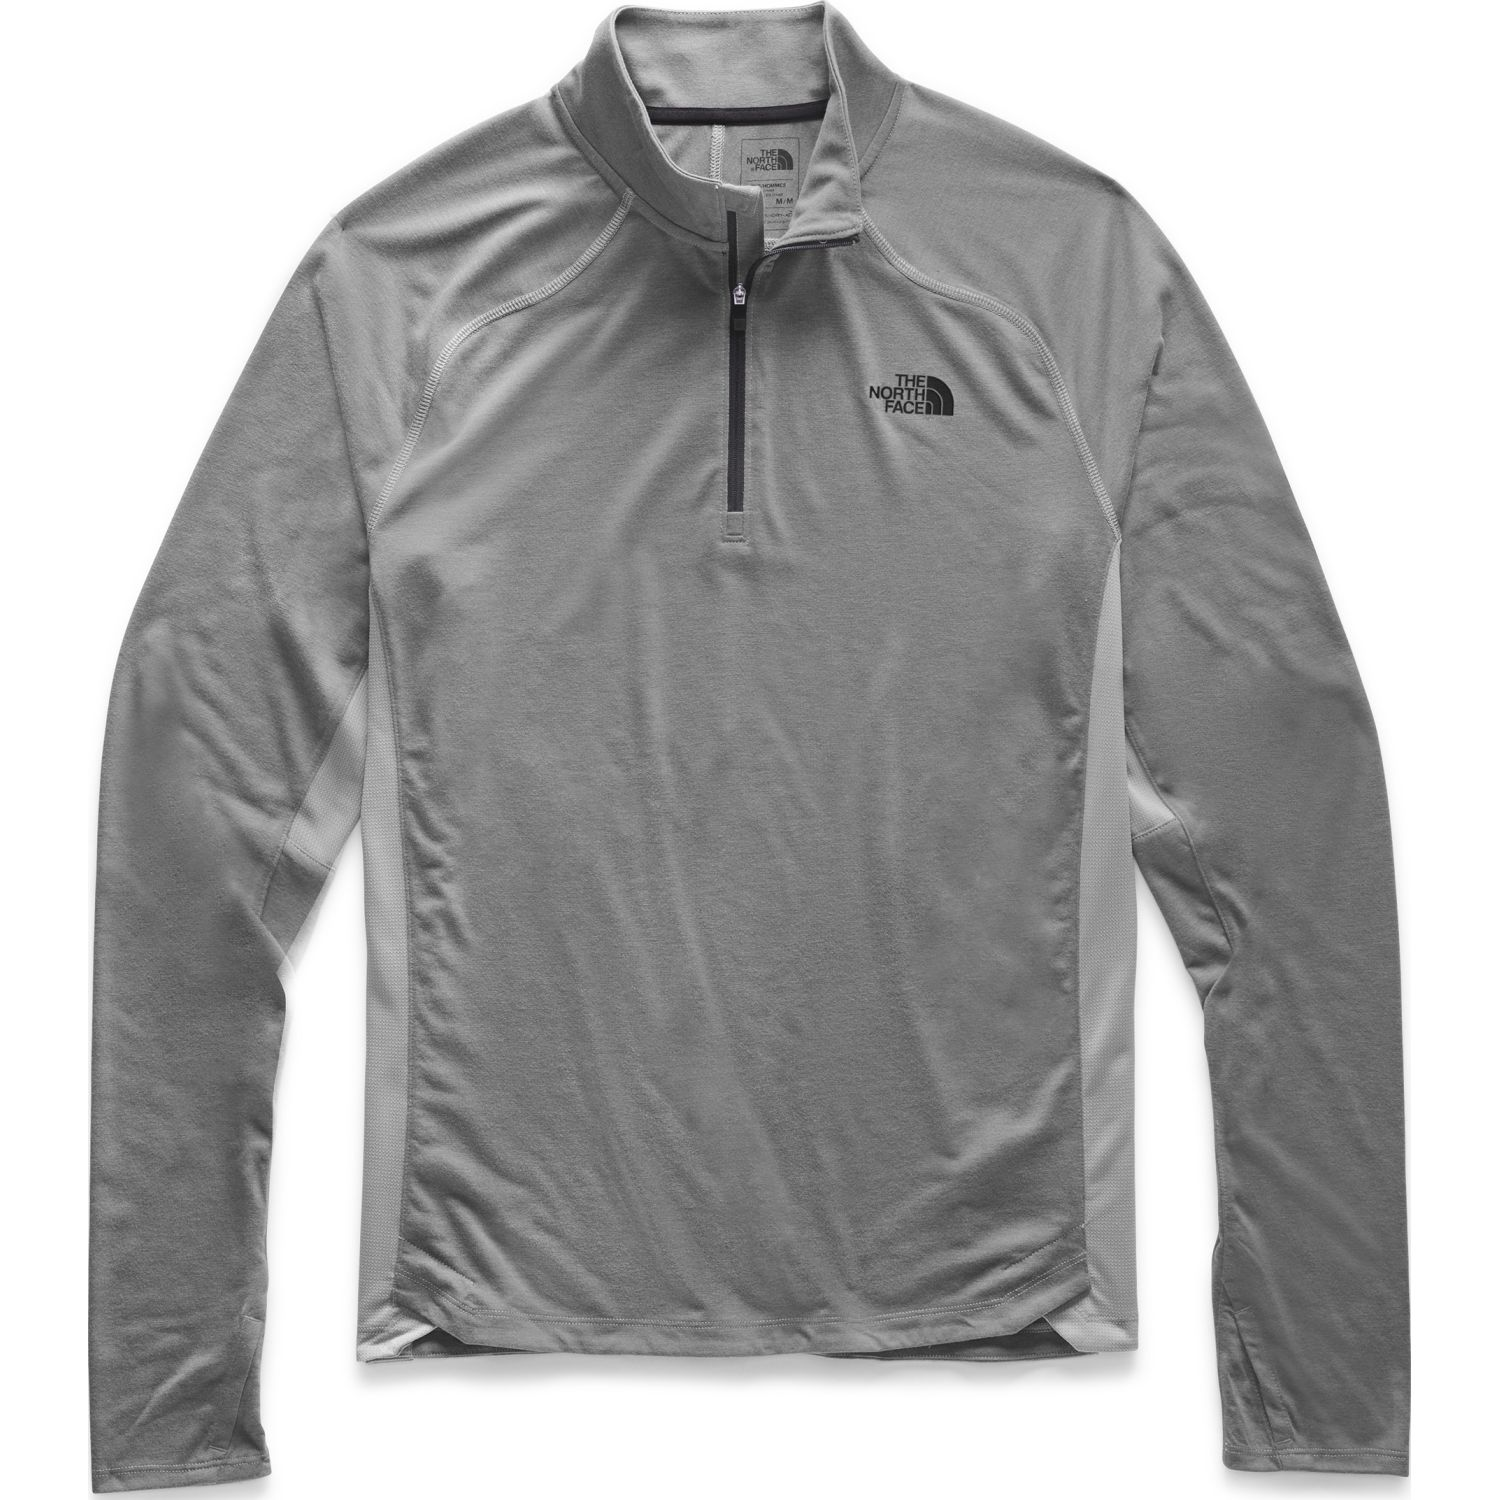 The North Face M Essential 1/4 Zip Gris Polos